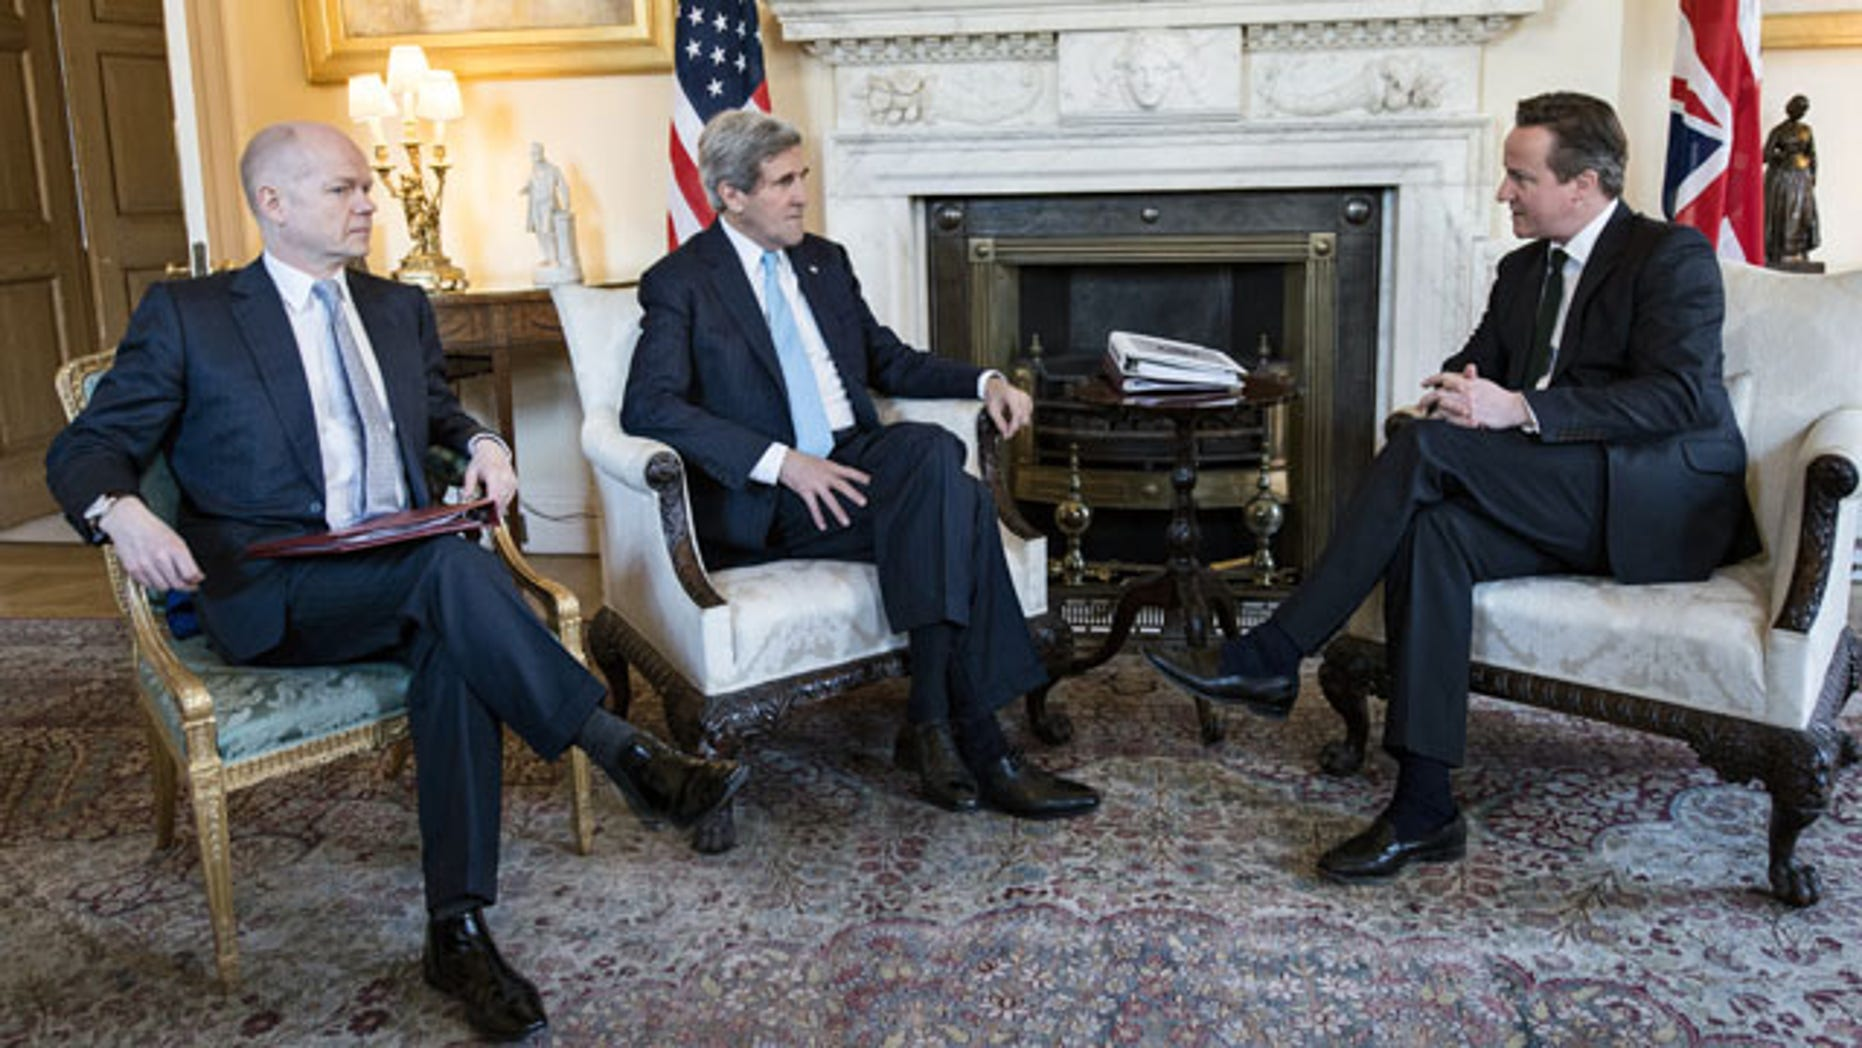 March 14, 2014: Britain's Prime Minister David Cameron, right, and Foreign Secretary William Hague, left, meet with US Secretary of State John Kerry in Downing Street, central London. (AP Photo/Brendan Smialowski, Pool)